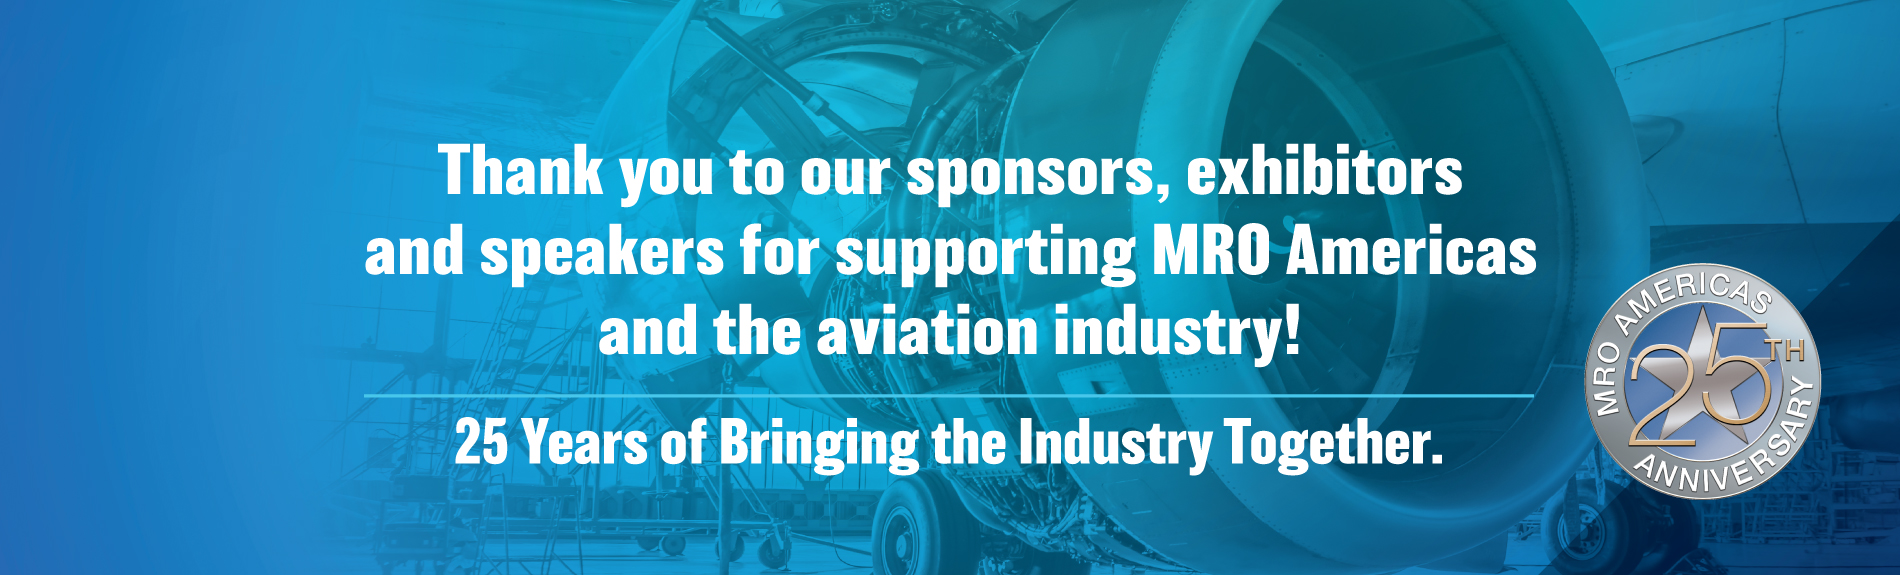 Thank you to our sponsors and exhibtors for supporting the industry